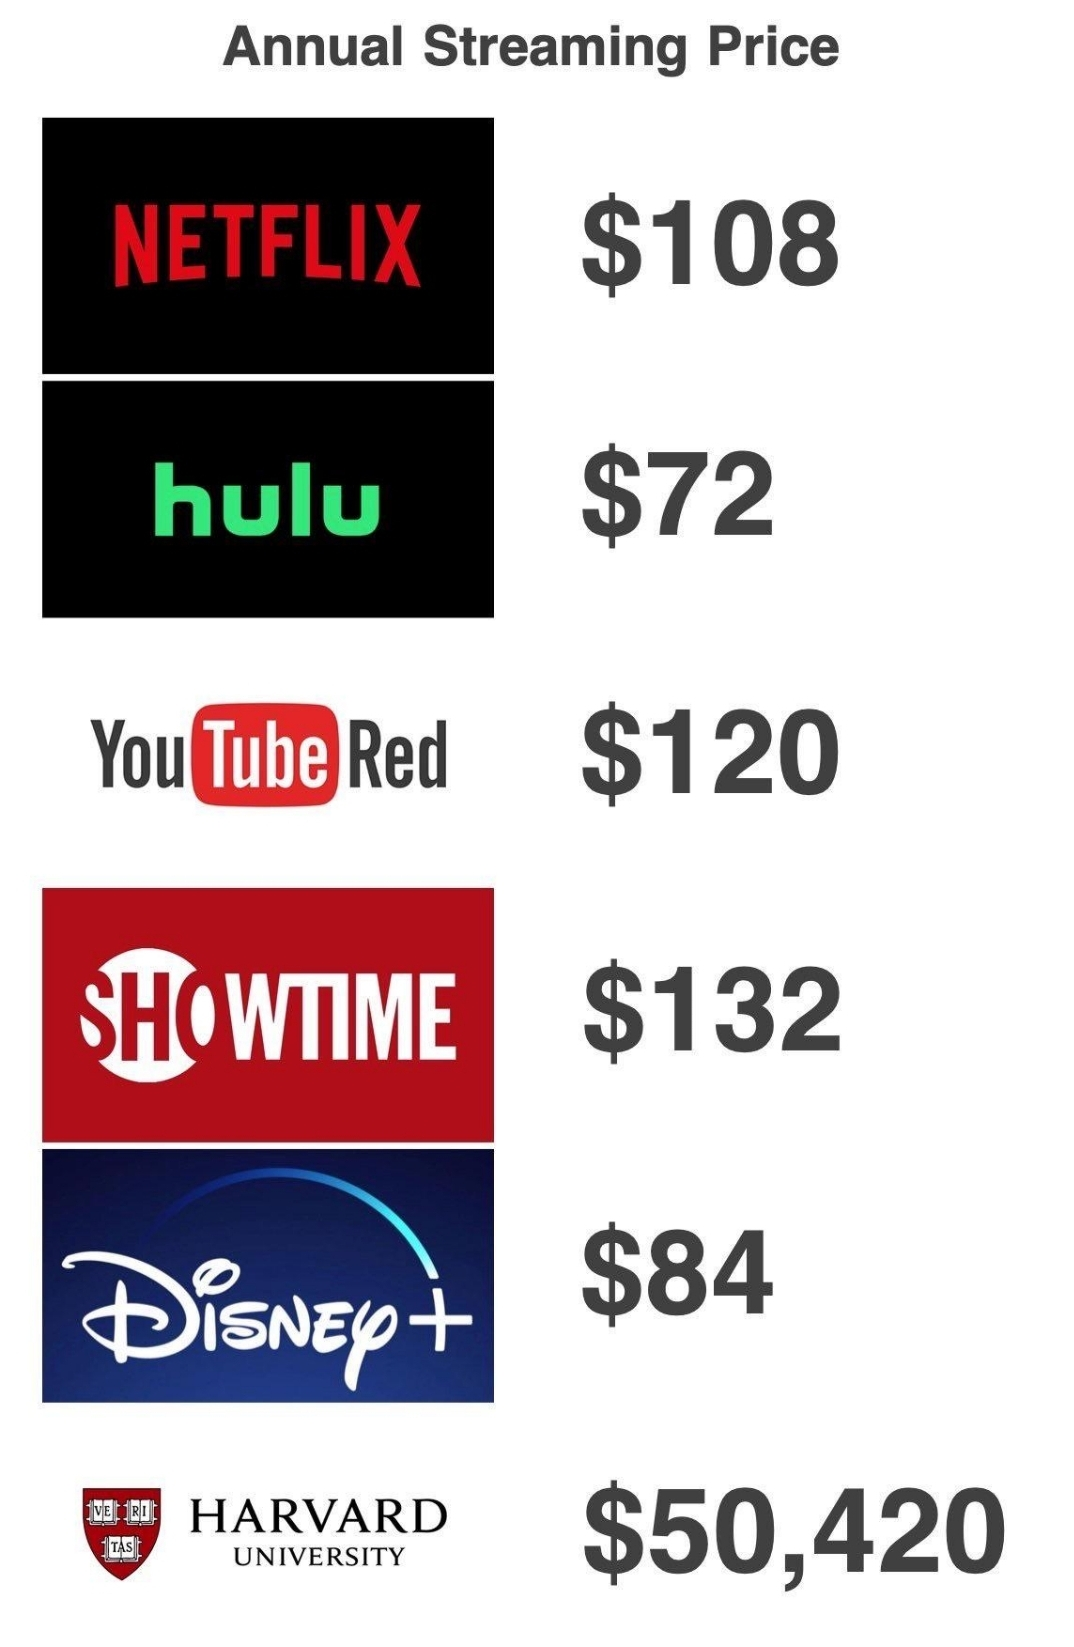 A comparison of how much it costs to use streaming sites. For example Netflix costs $108 a year but streaming your education from Harvard costs $50,420.